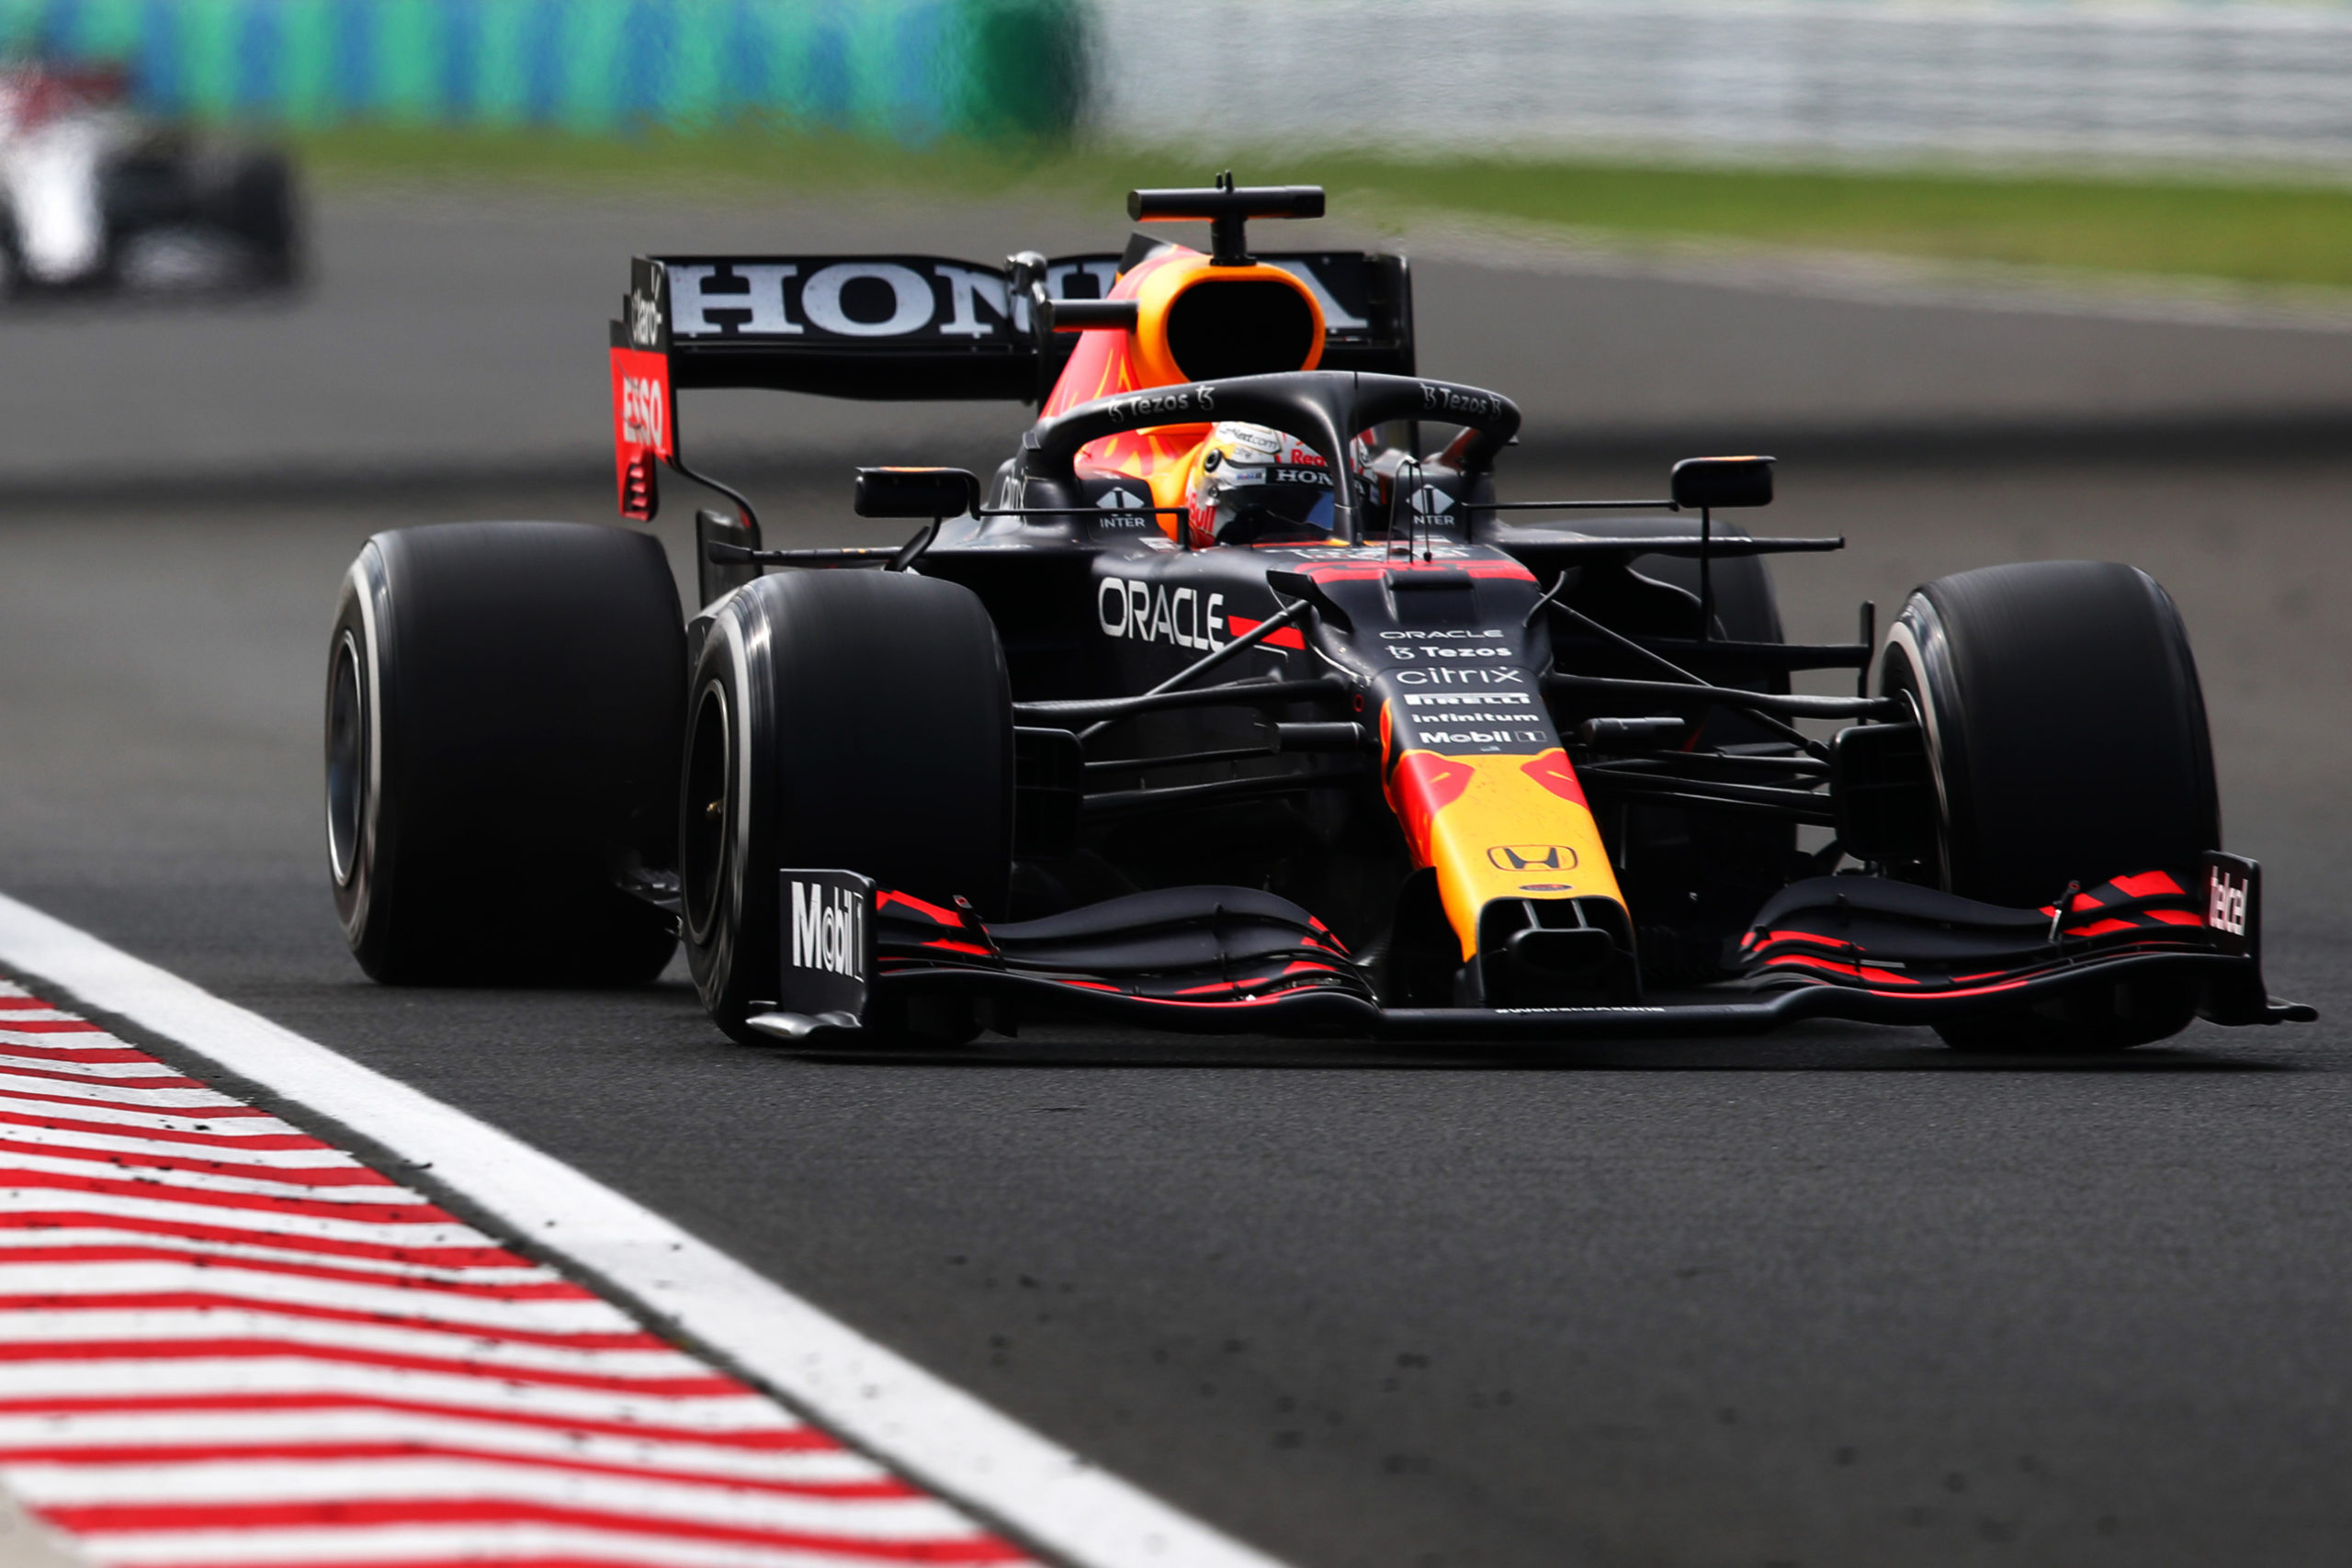 BUDAPEST, HUNGARY - AUGUST 01: Max Verstappen of the Netherlands driving the (33) Red Bull Racing RB16B Honda during the F1 Grand Prix of Hungary at Hungaroring on August 01, 2021 in Budapest, Hungary. (Photo by Getty Images/Getty Images) // Getty Images / Red Bull Content Pool  // SI202108010464 // Usage for editorial use only //